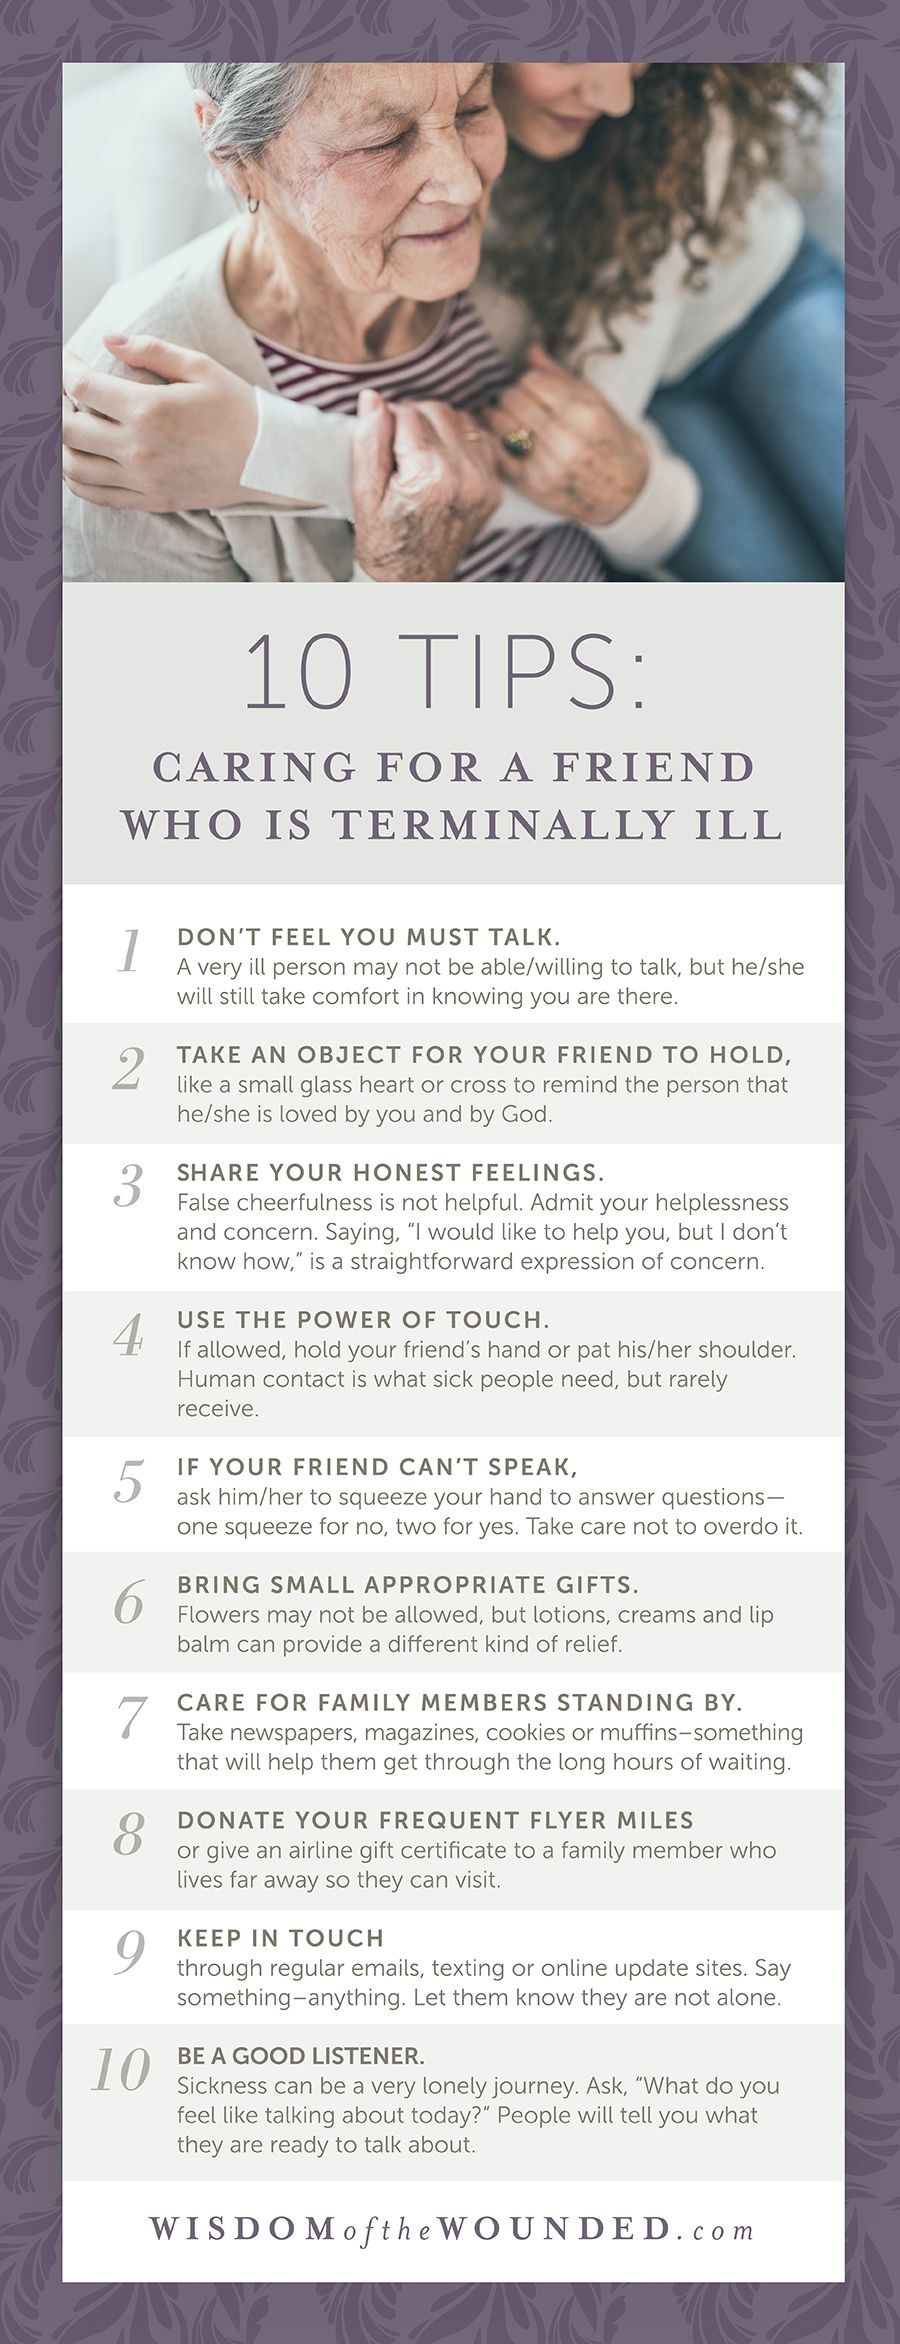 Being a Friend to the Terminally Ill Wisdom of the